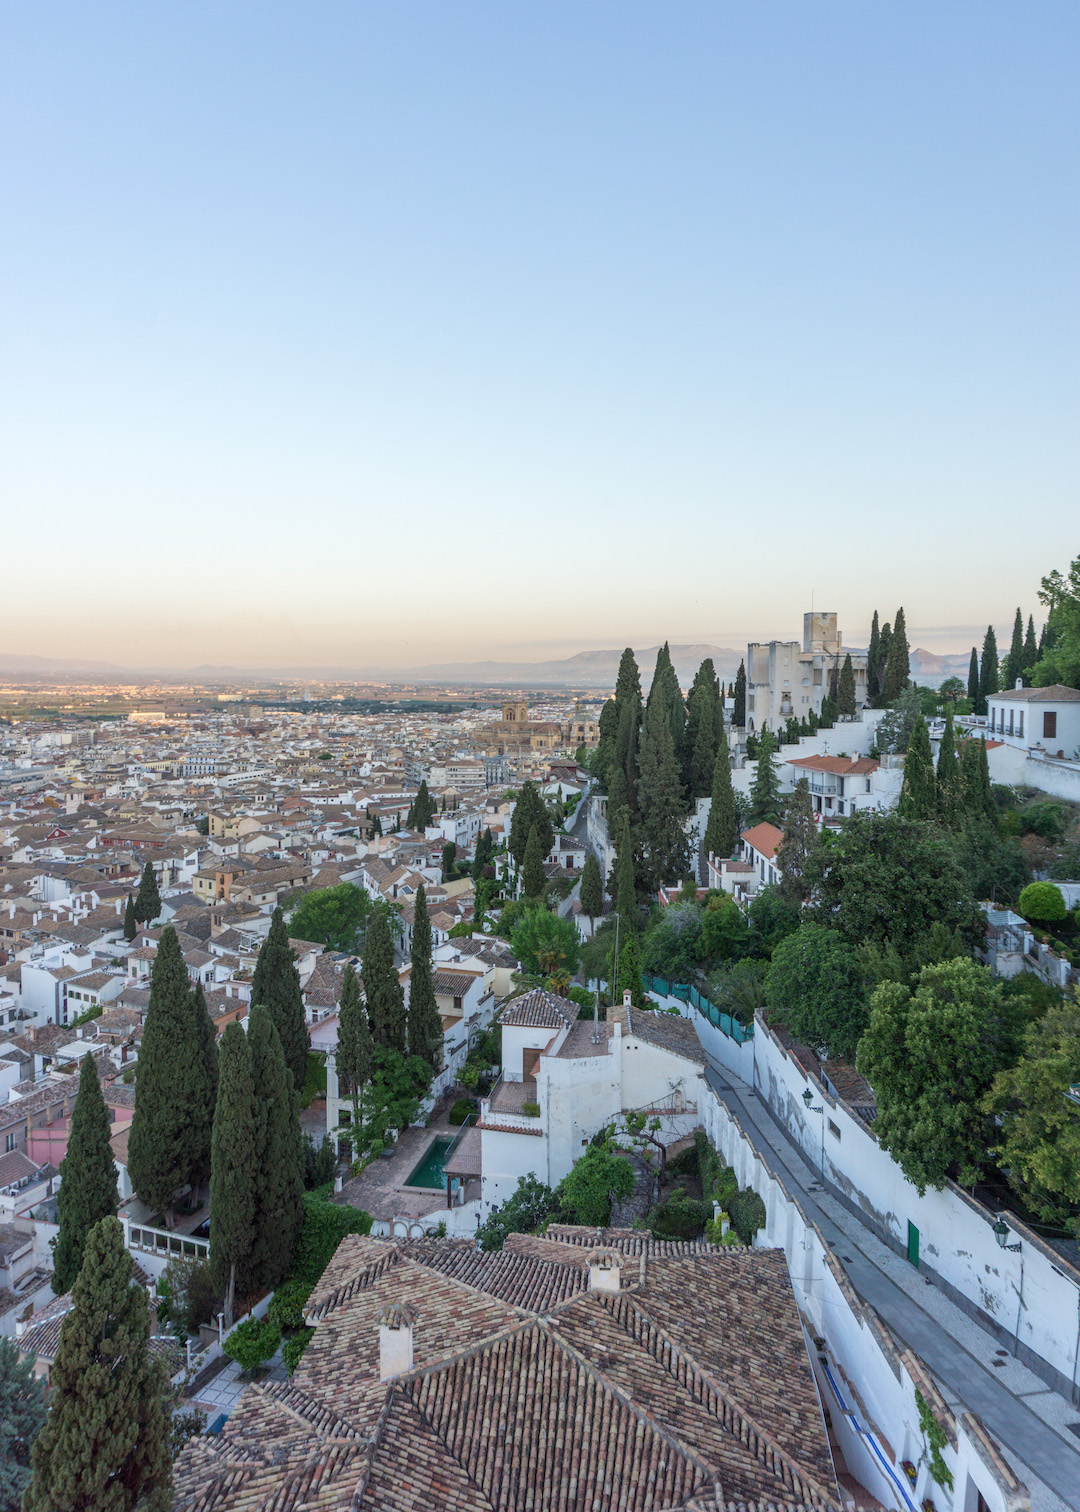 Her_Travel_Edit_Granada_View_from_Alhambra_Palace_Hotel